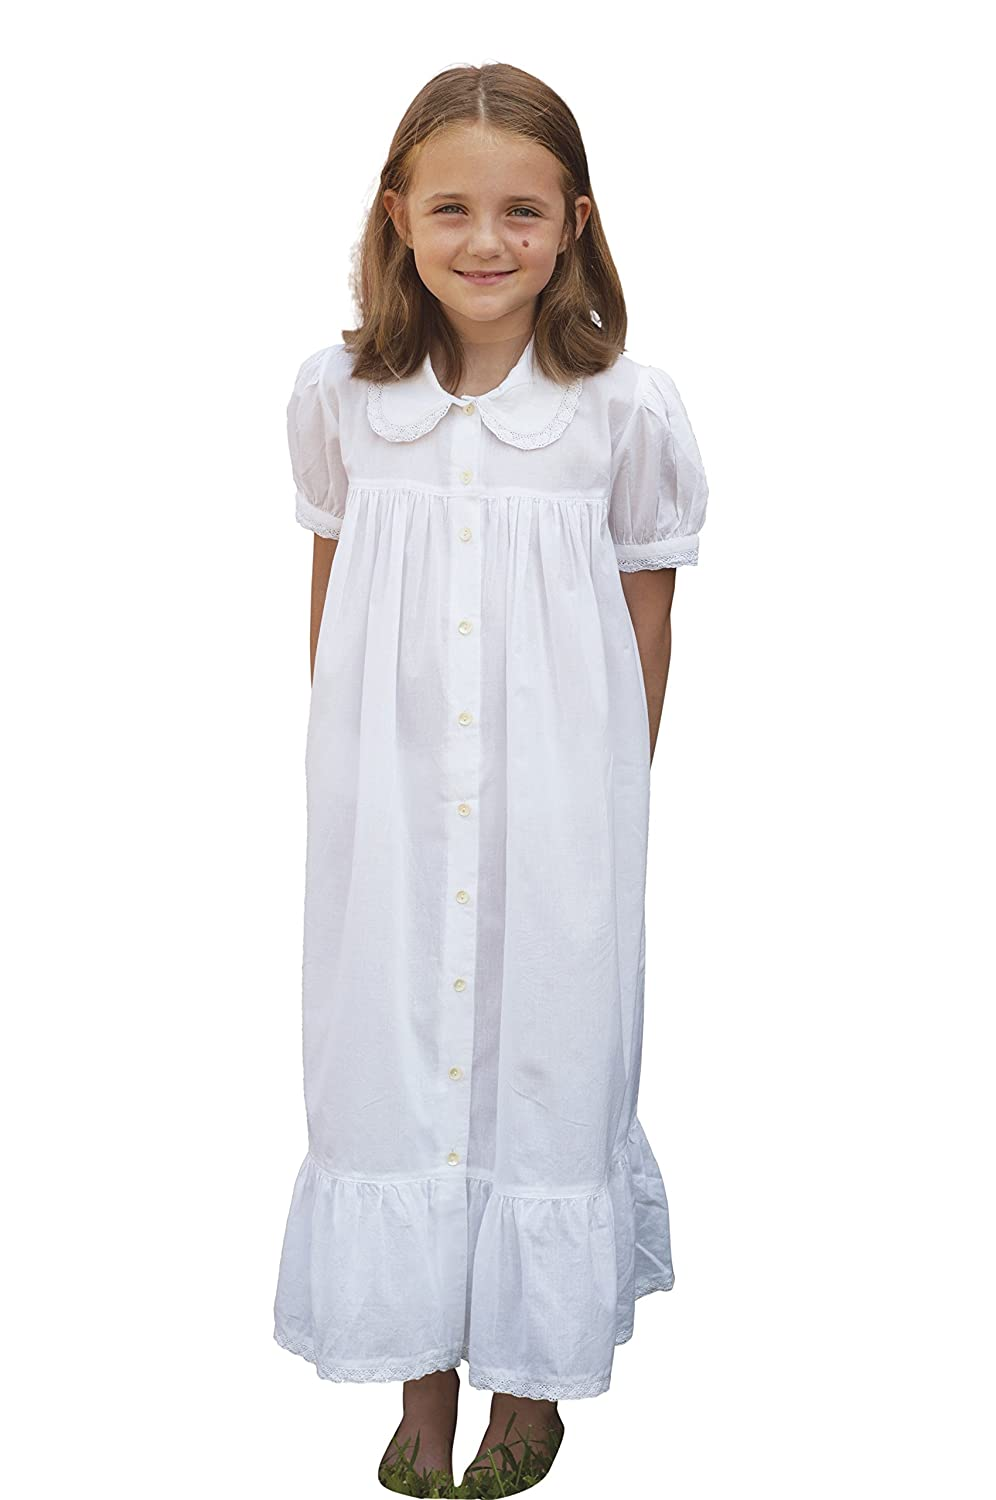 Victorian Kids Costumes & Shoes- Girls, Boys, Baby, Toddler Chrissy Girls Petticoat $21.00 AT vintagedancer.com